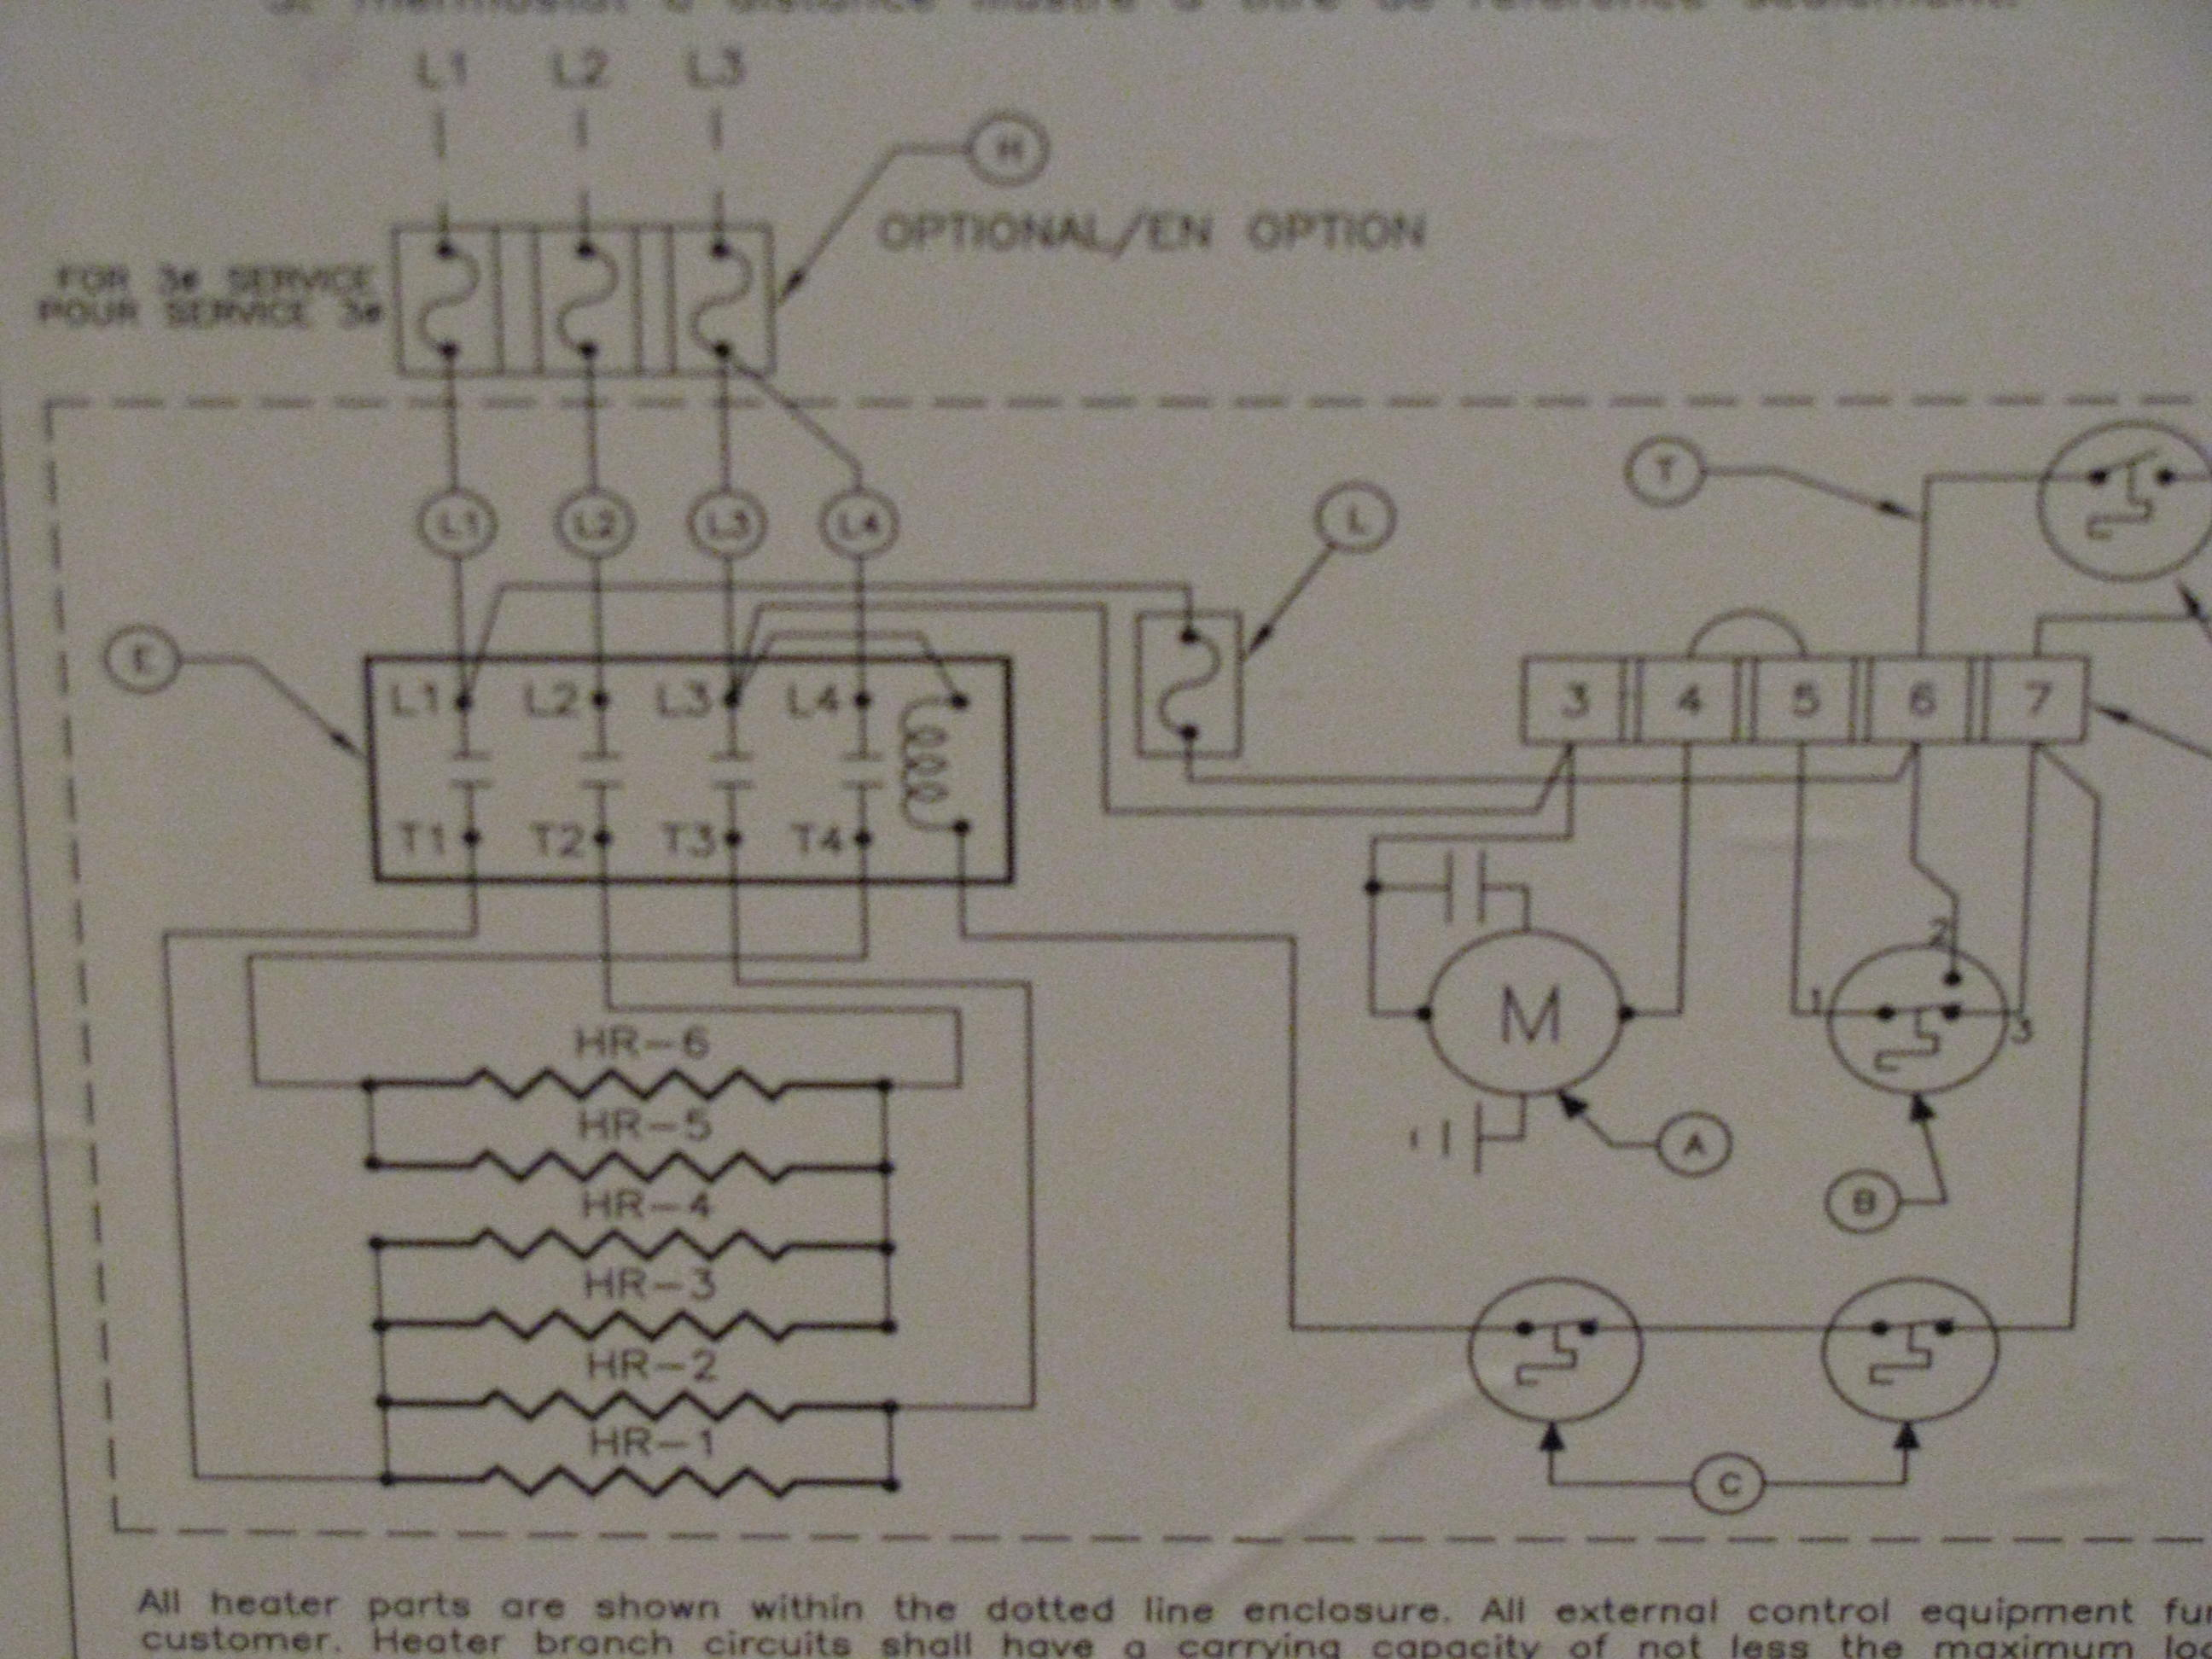 i have an dimplex euh 240v 3 phase that i am connecting directly rh justanswer com Wiring- Diagram Omega Alarm Wiring Diagrams